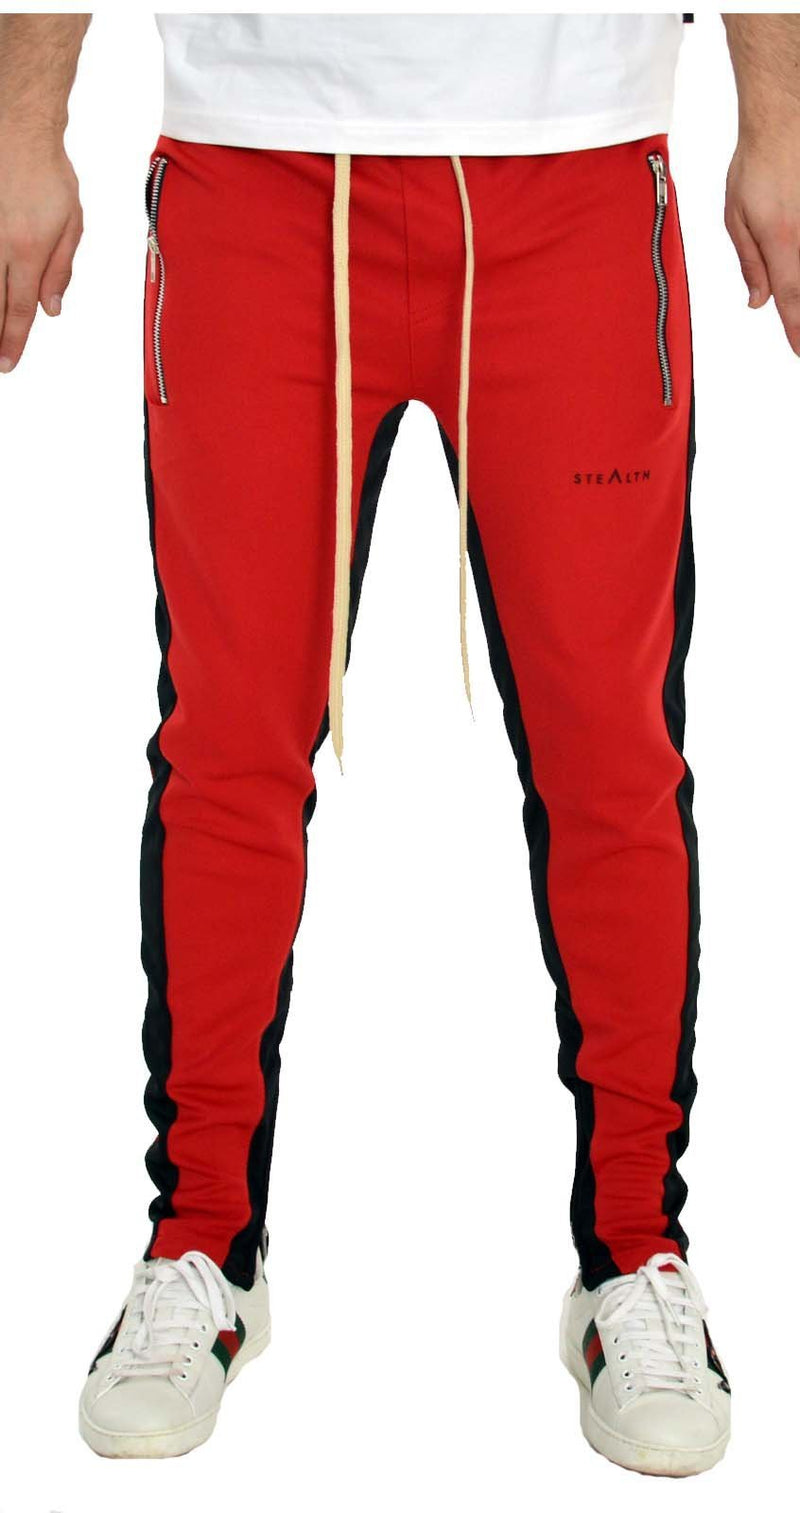 Stealth London Clothing Co Xtra Small  (Slim Fit) Vulcan Track Bottoms (Red/Black)